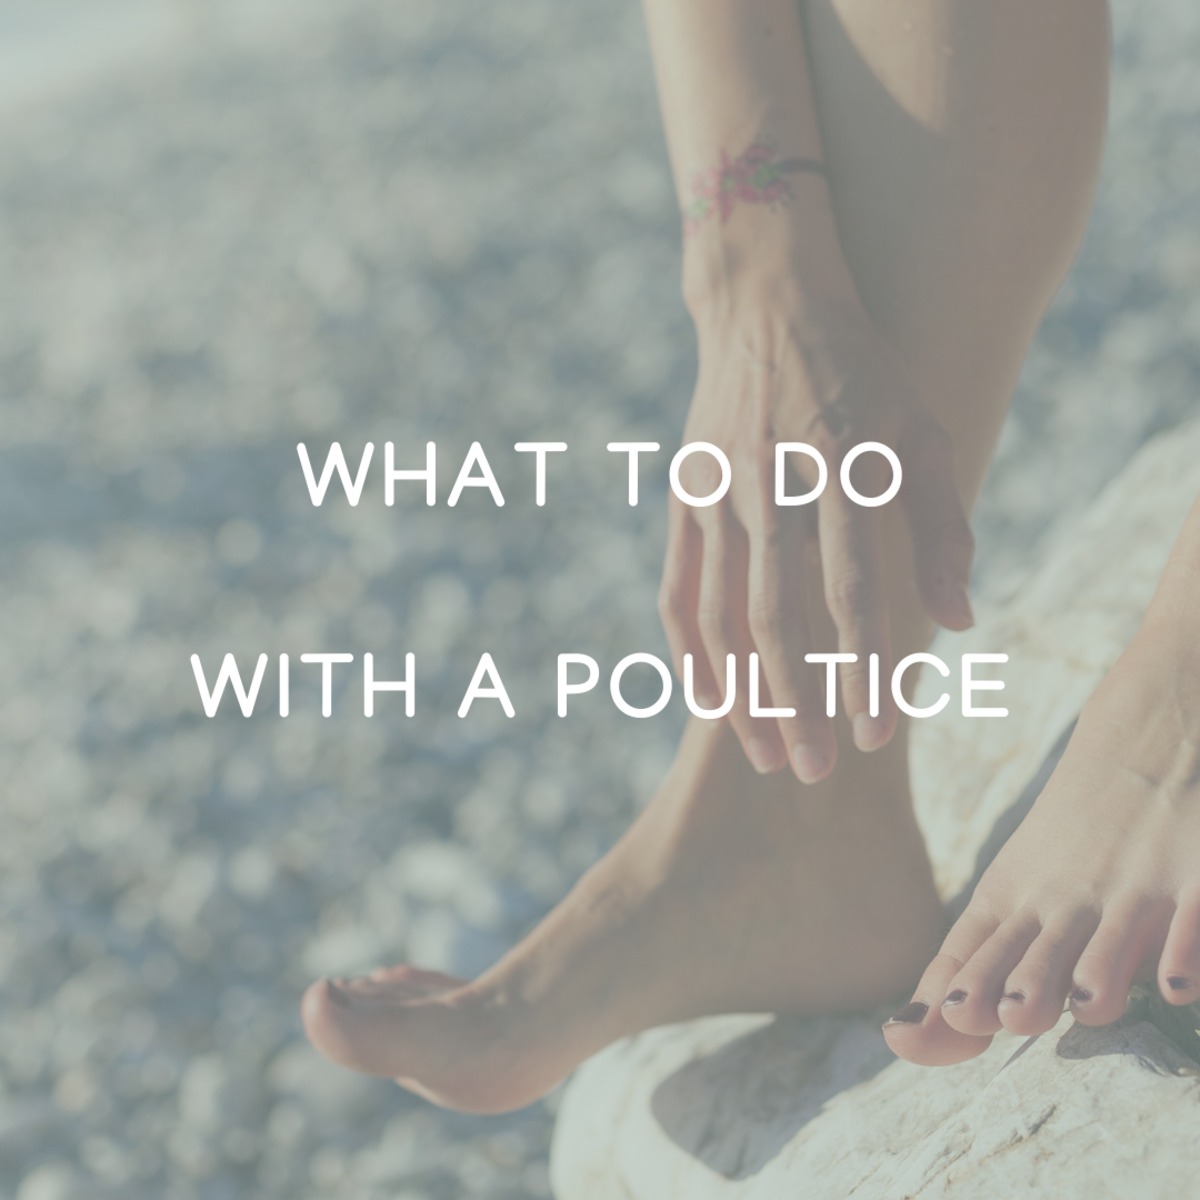 What do you do with a poultice?